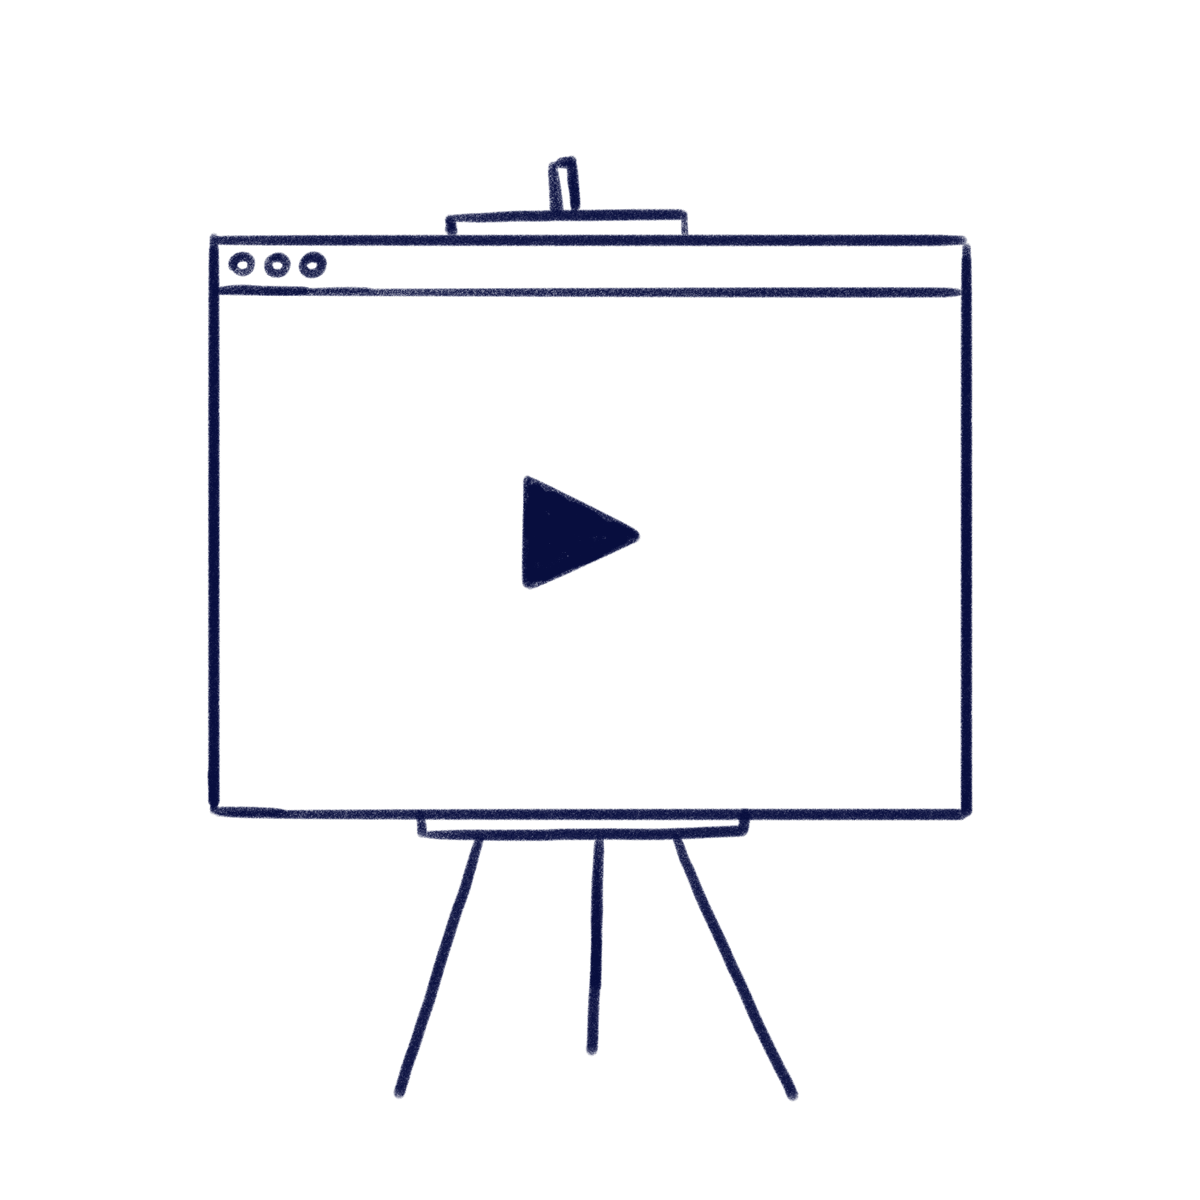 Hand drawn illustration of a presentation support with a play icon inside to represent Scilife webinars and online events